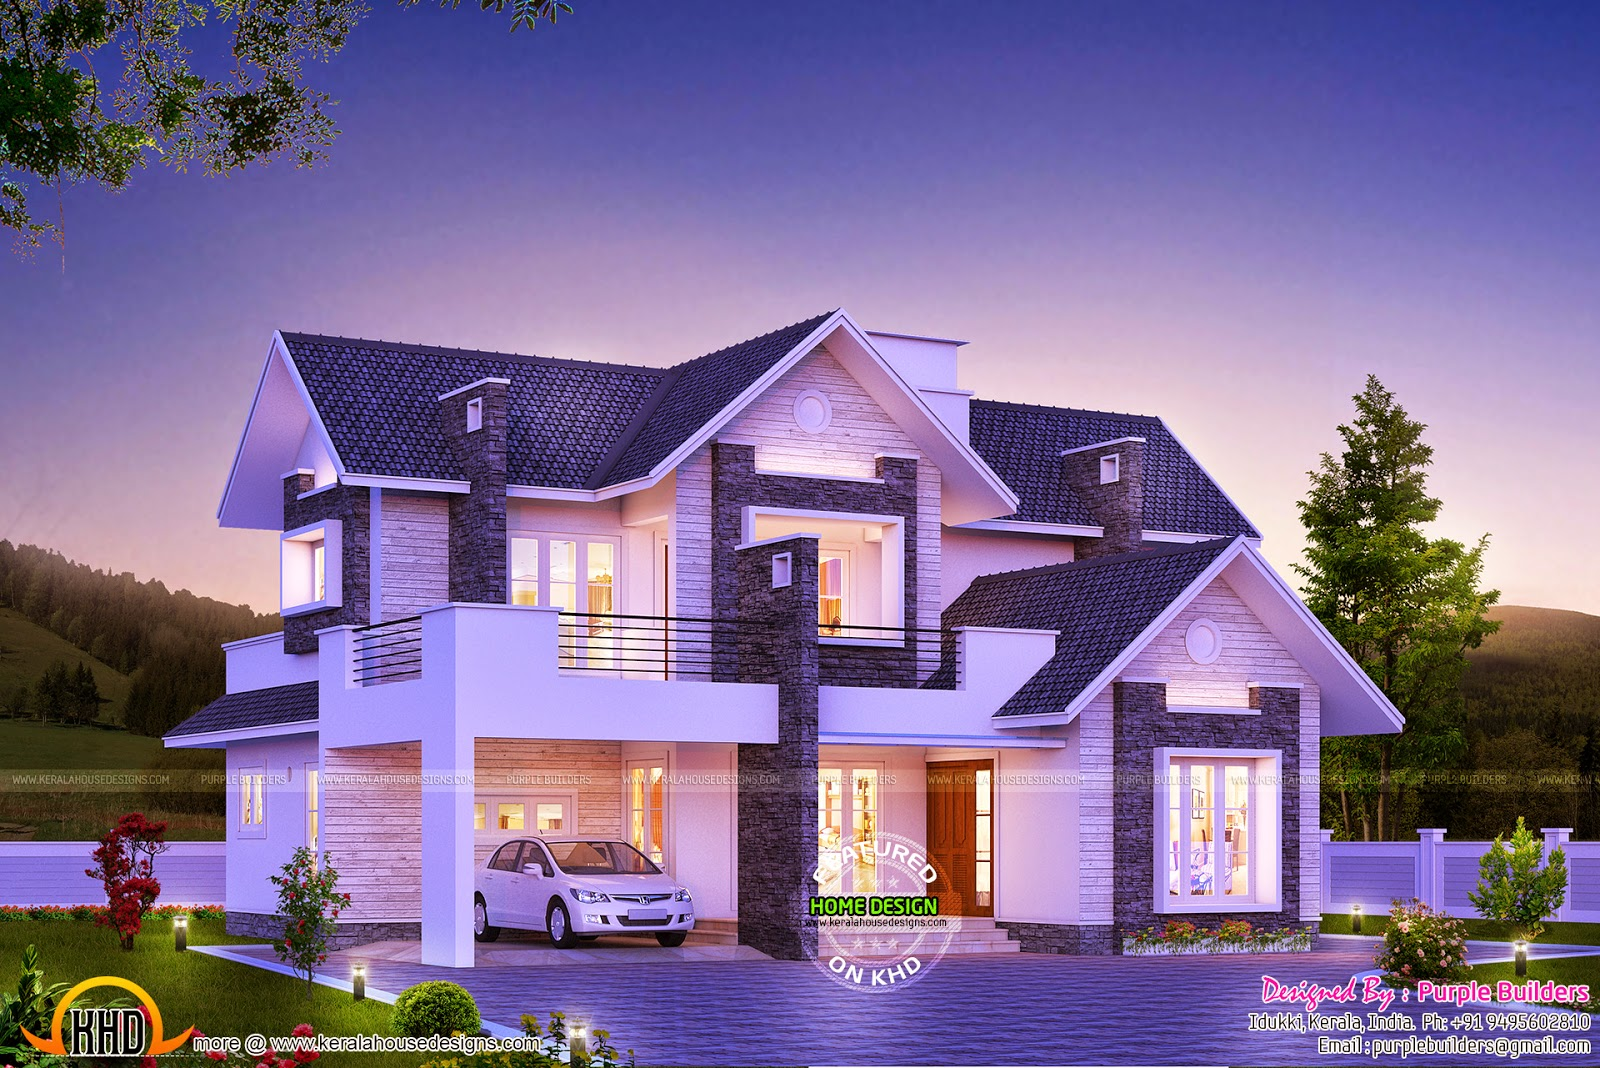 Super dream home kerala home design and floor plans My home design build